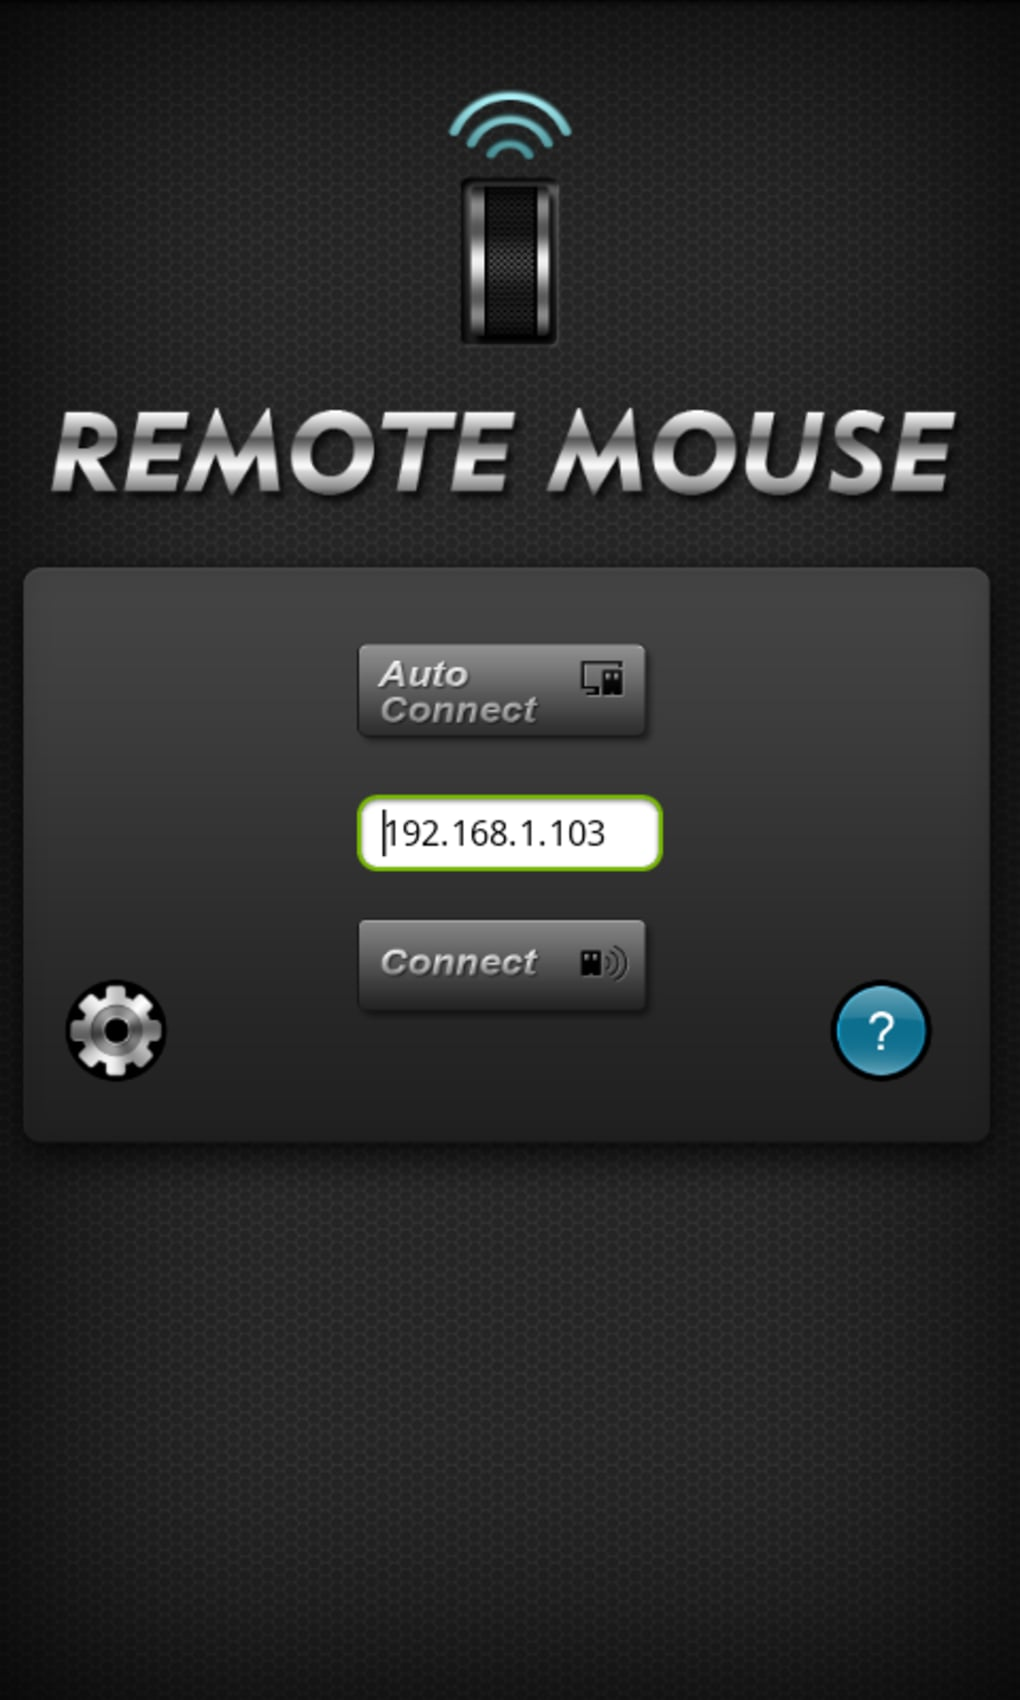 remote mouse for Android - Download